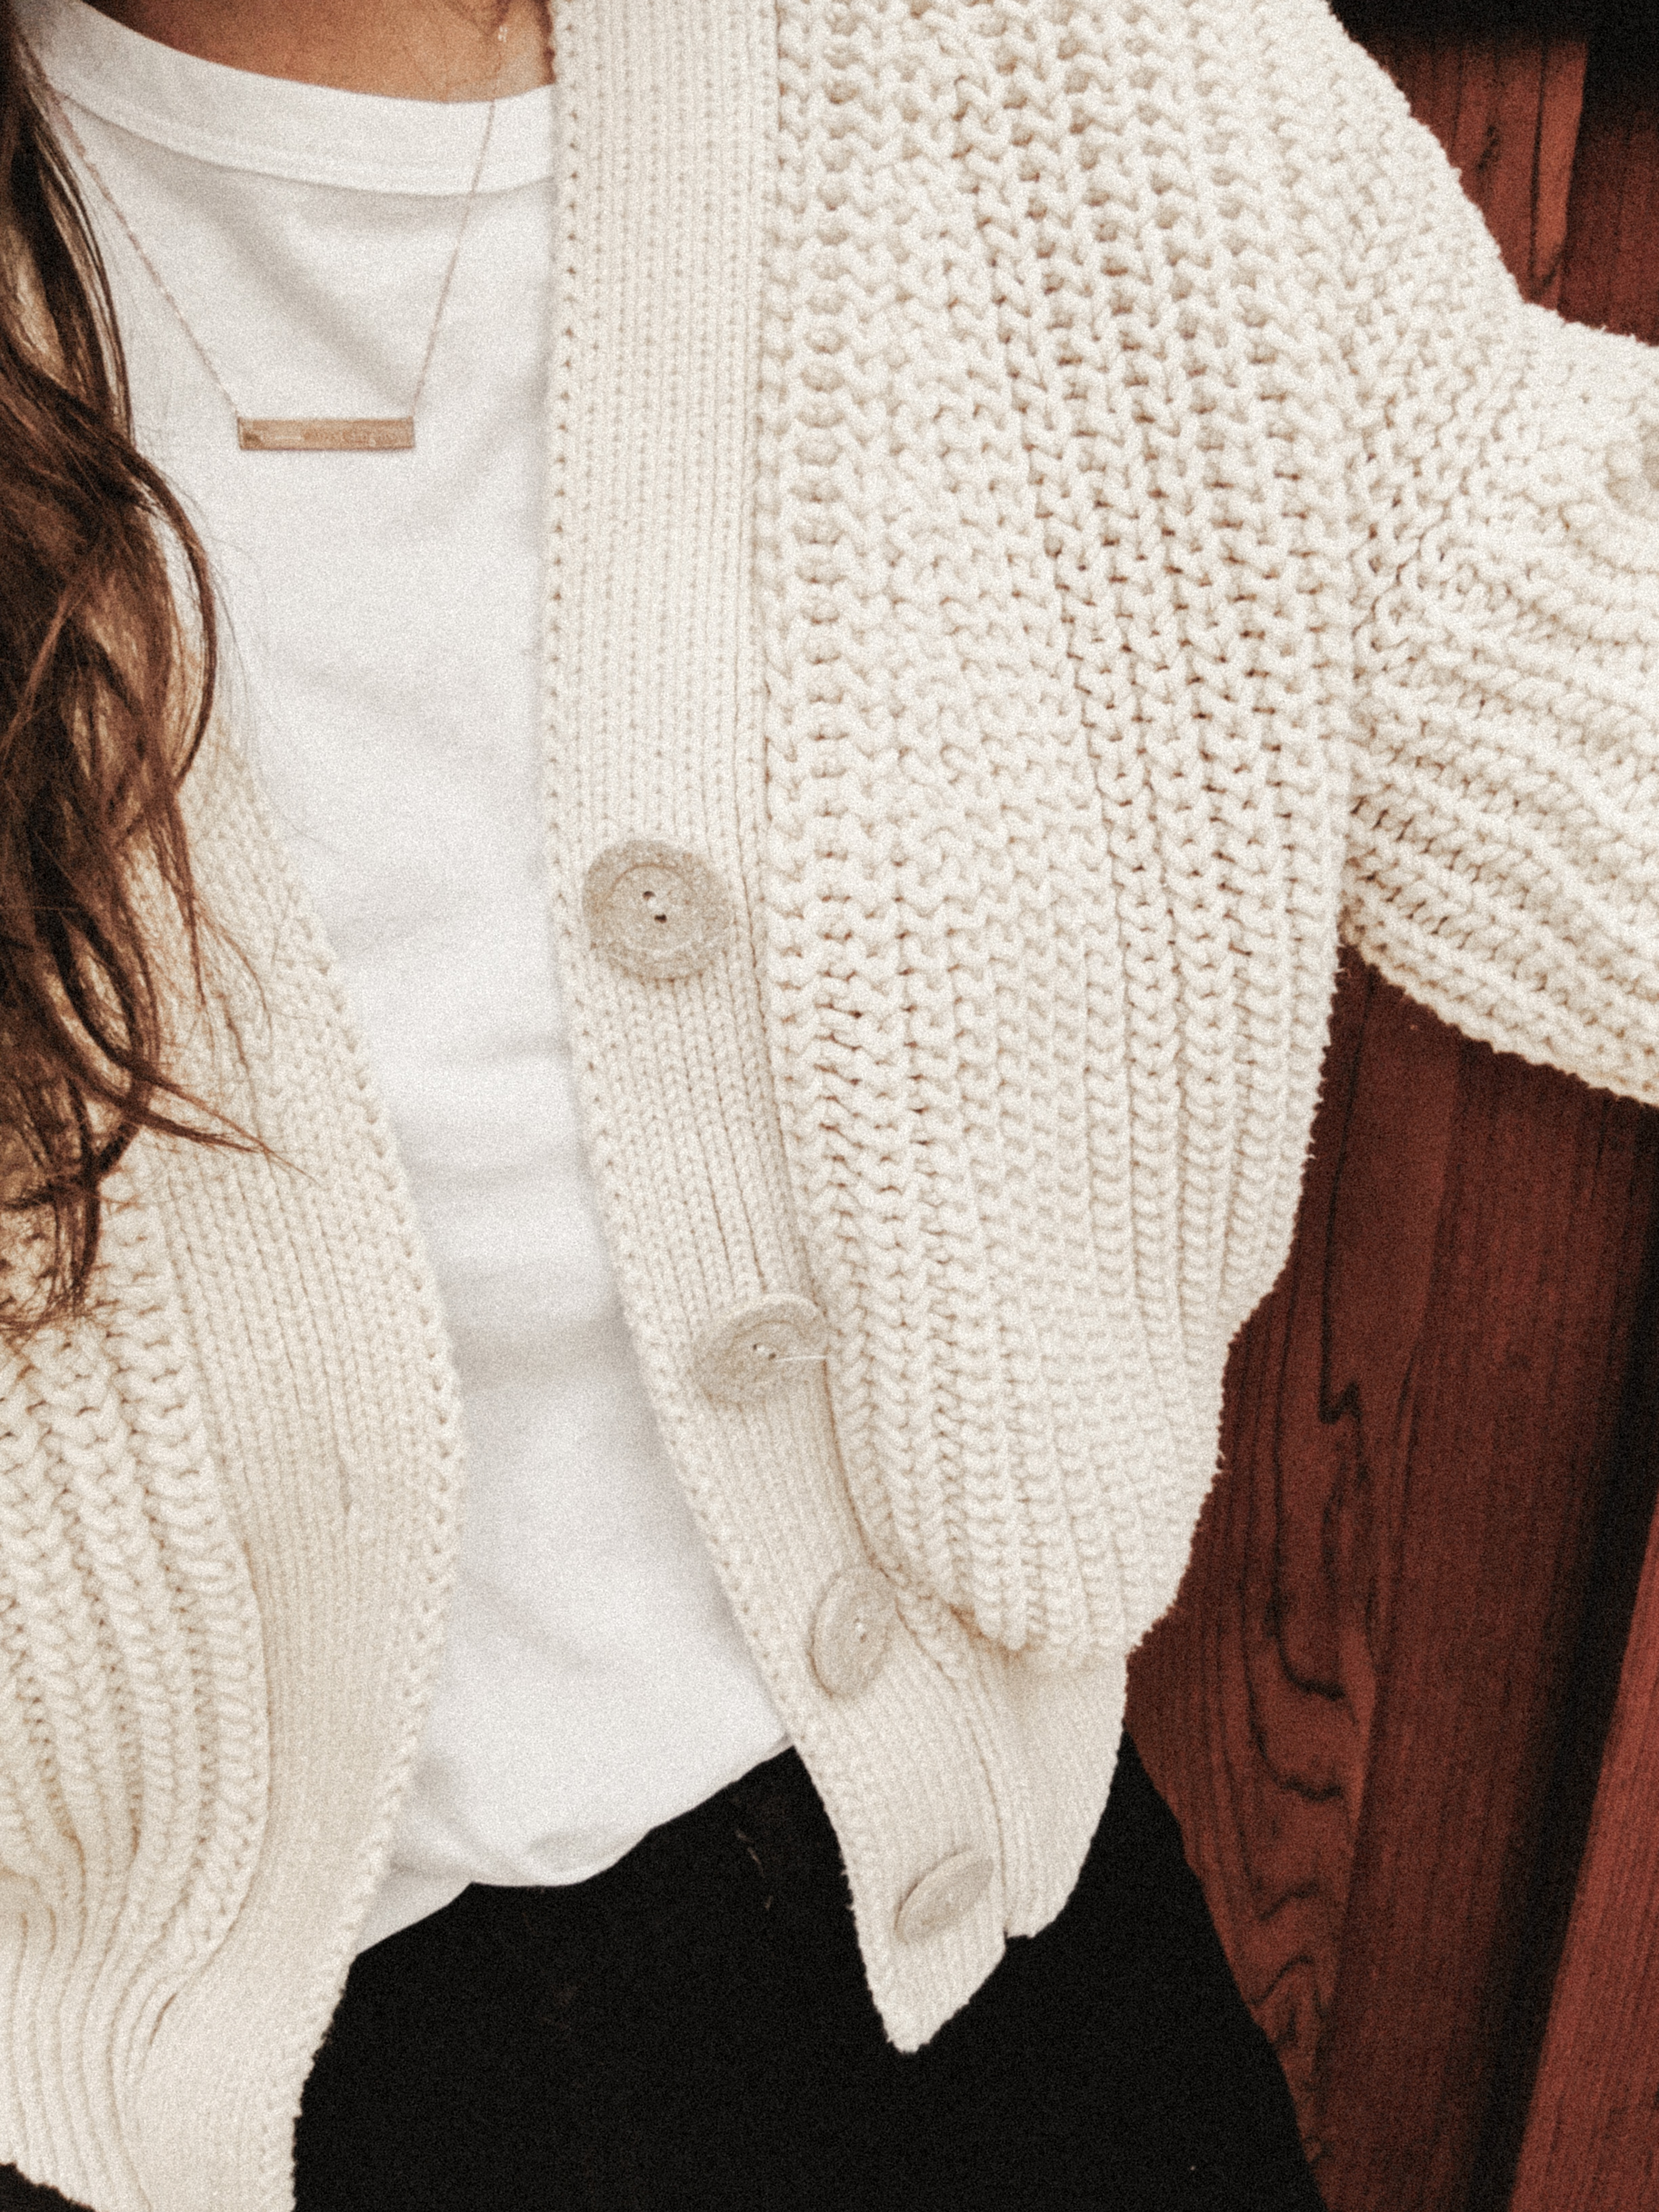 3. Babaa Knitwear Cardigan no18 - Do I really need to say anything here? I am fully on the Babaa train. I got so many compliments, and it kept me feeling snug and safe. I would die for this sweater.(I'm joking??)